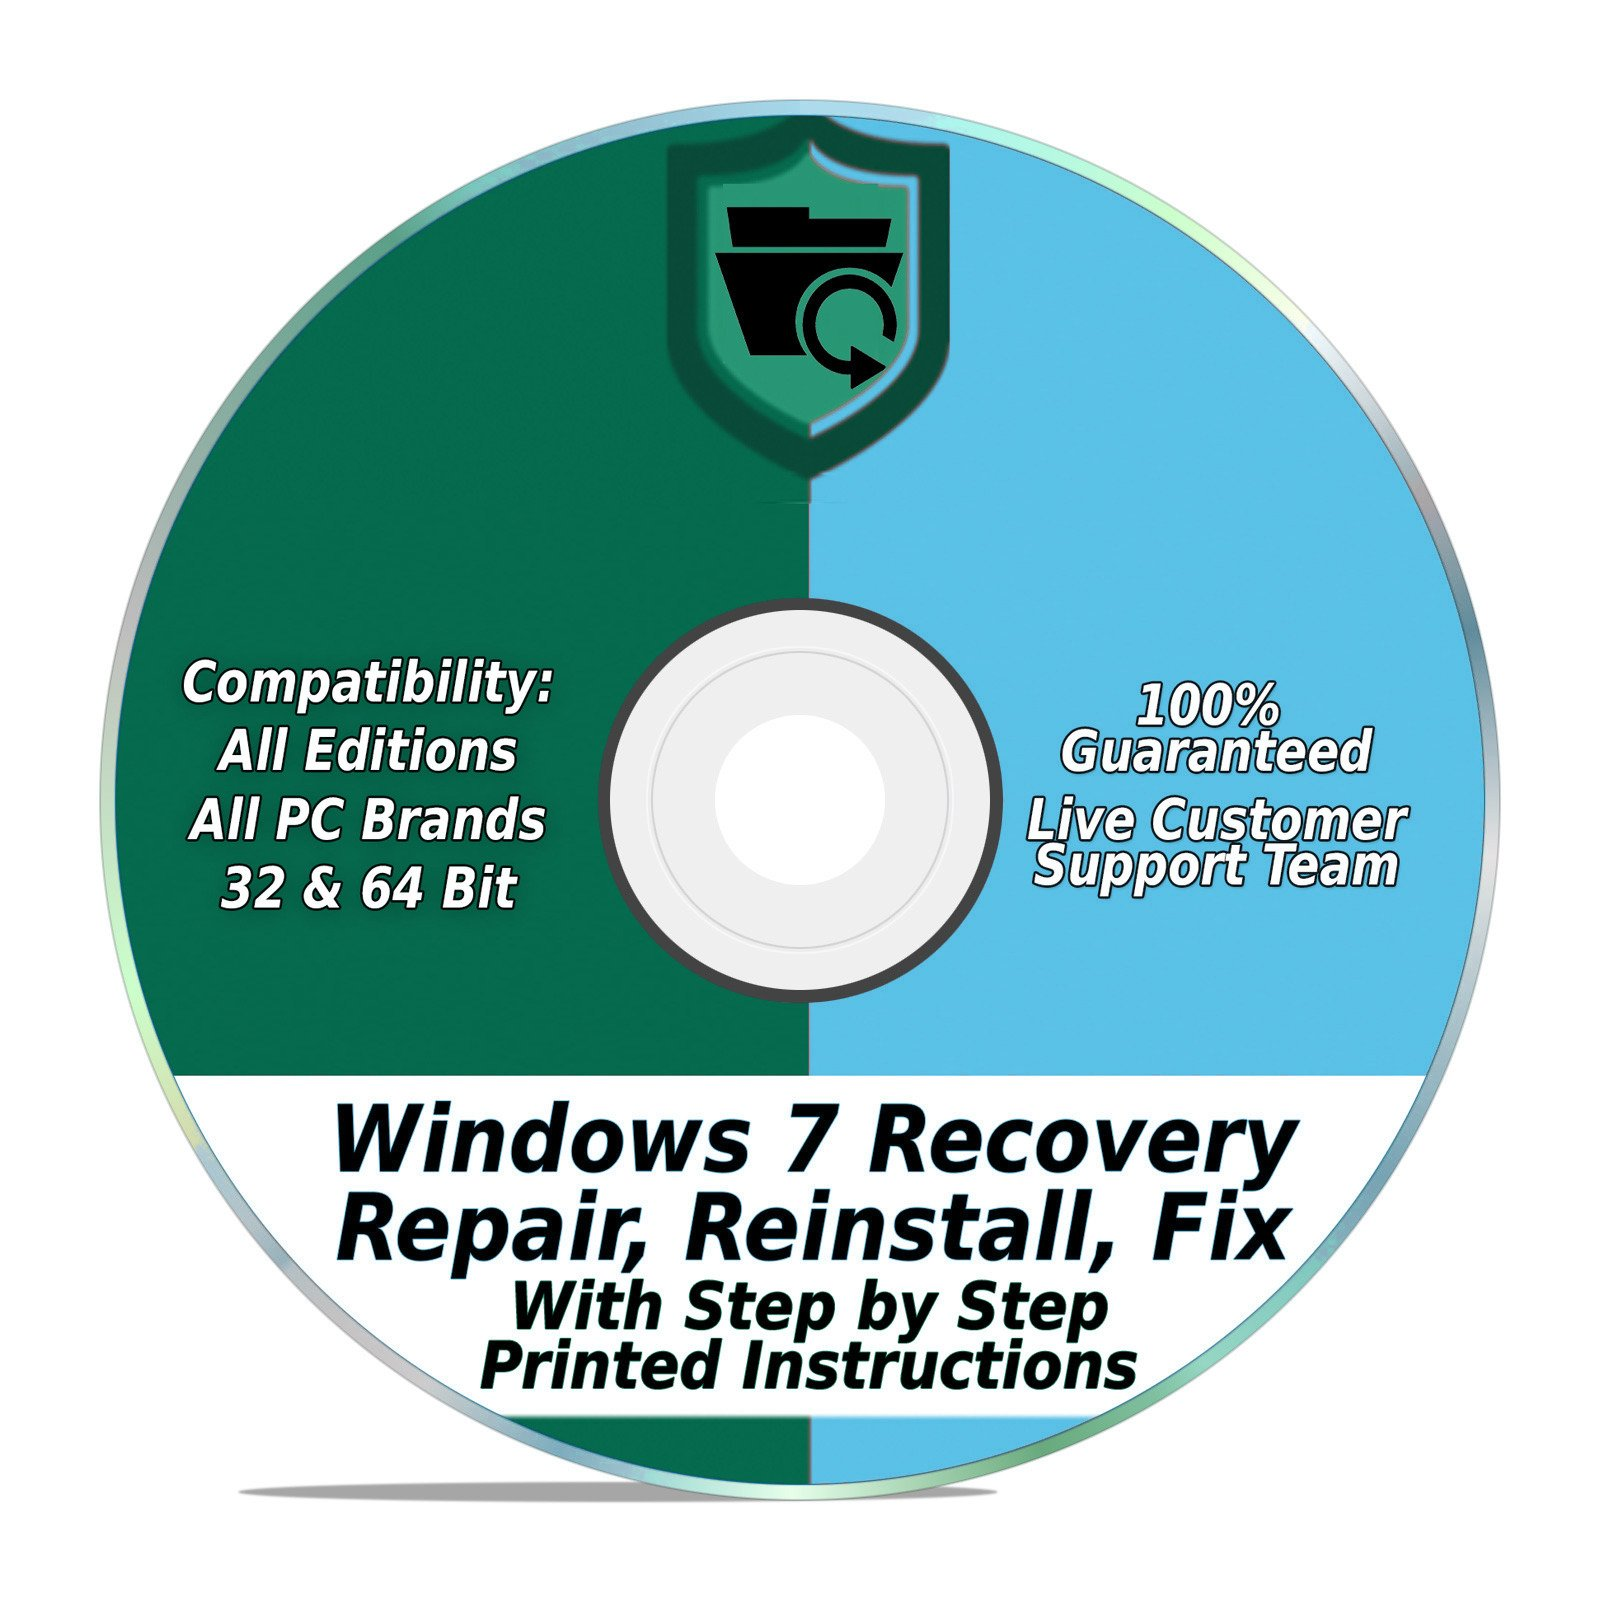 Windows 7 Repair Recovery Disk 32 64 Bit Dvd Reinstall Reboot Laptop Hp Diagram Fix All Brands